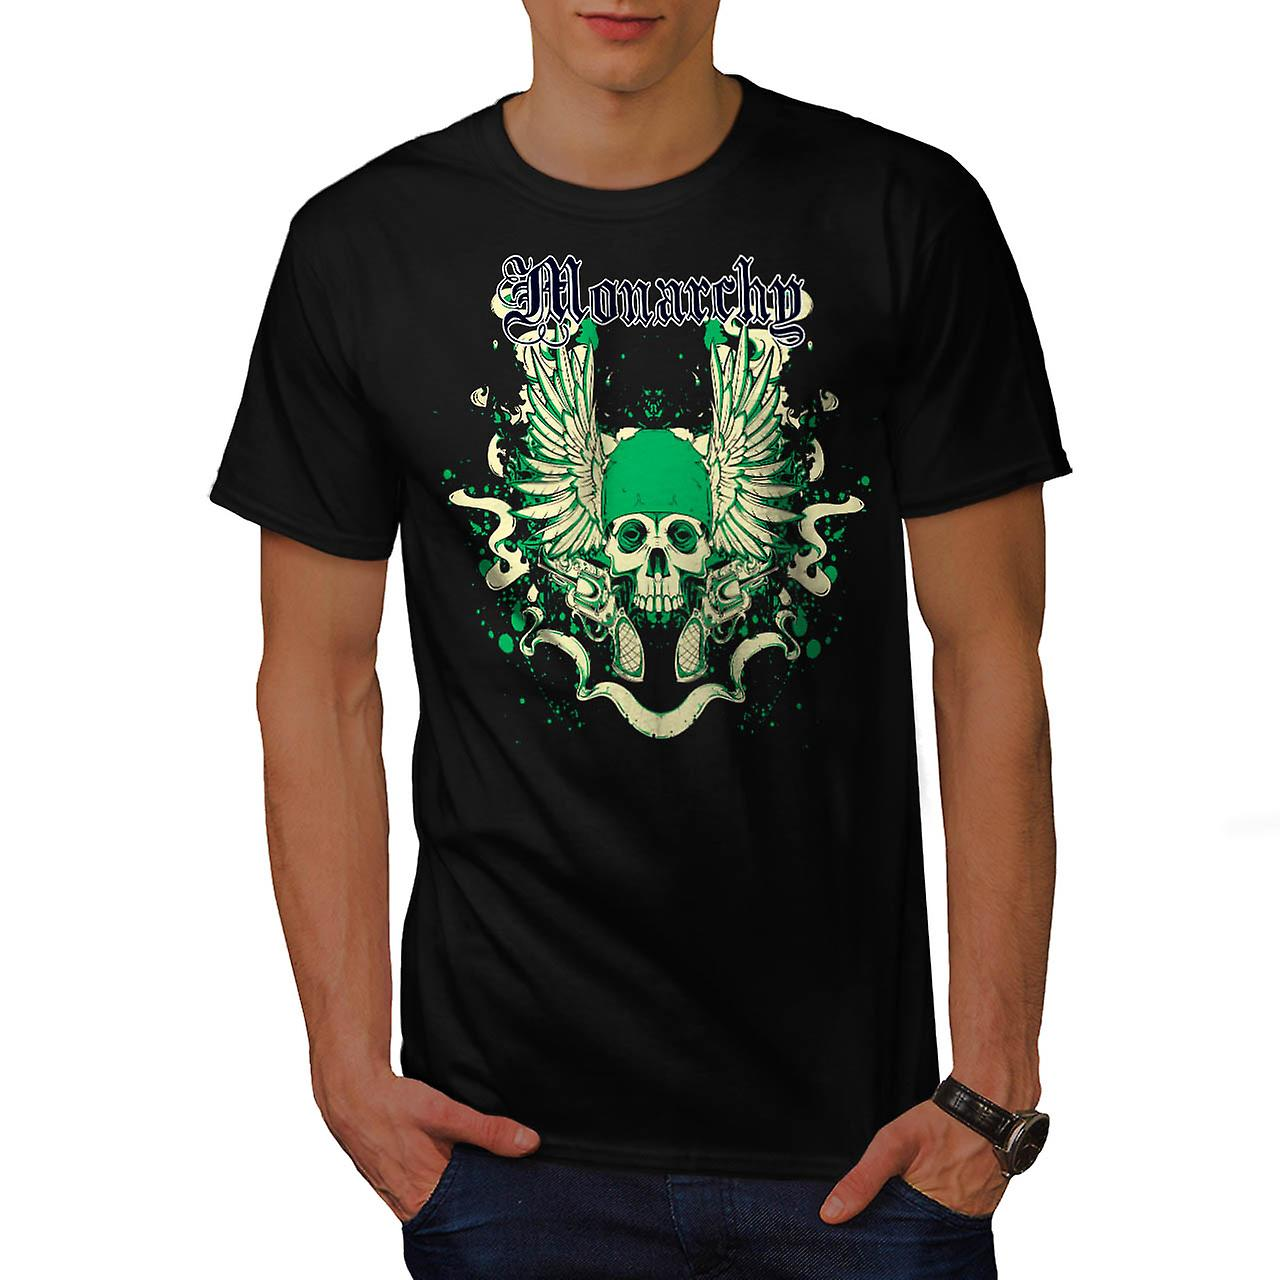 Monarchia fantasma righello Gang terra uomini t-shirt nero | Wellcoda